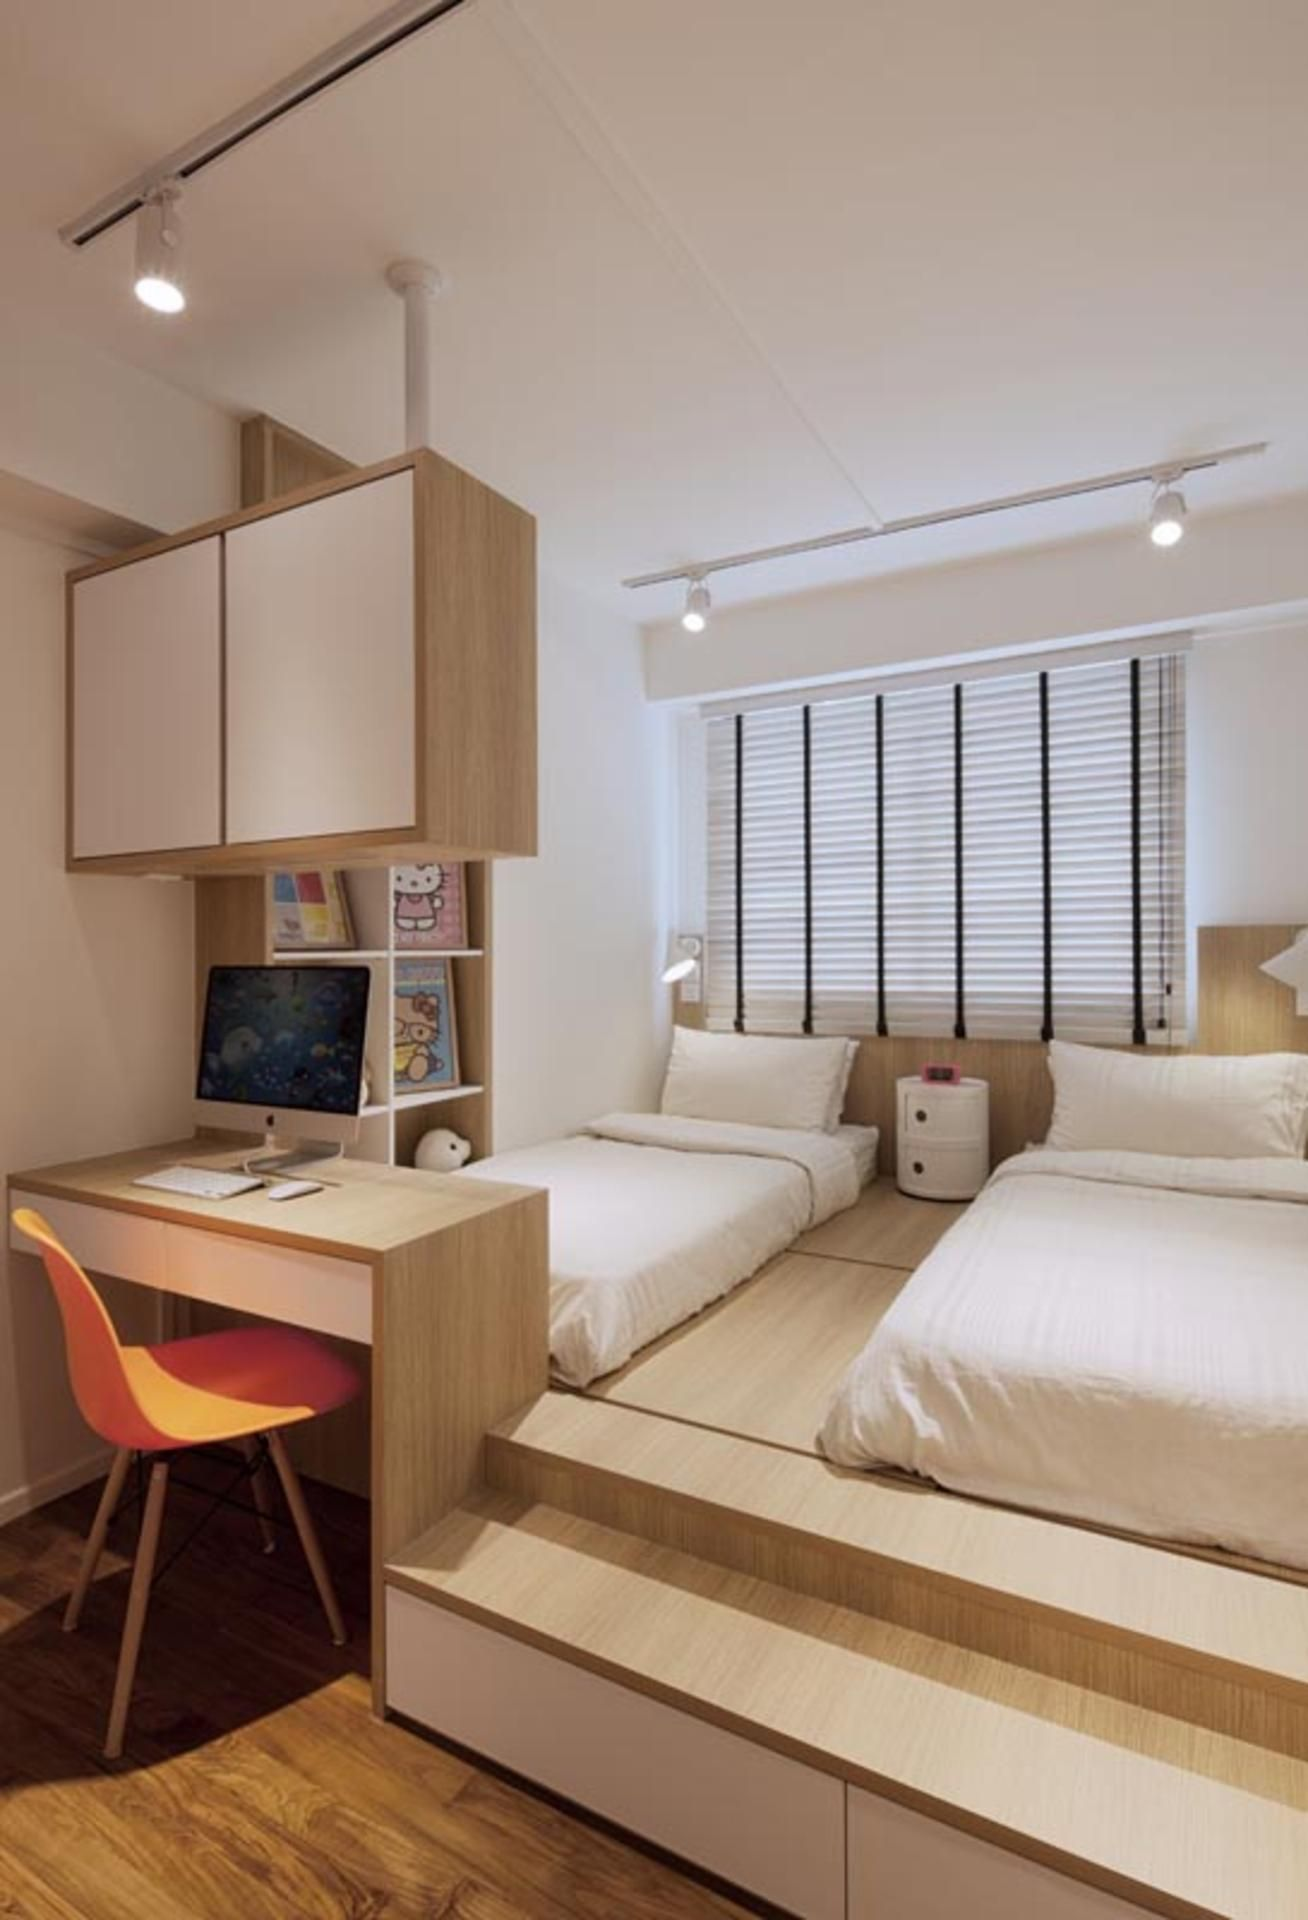 Small Bedroom Renovation Punggol Waterway Terraces Block 308a Qanvast Home Design